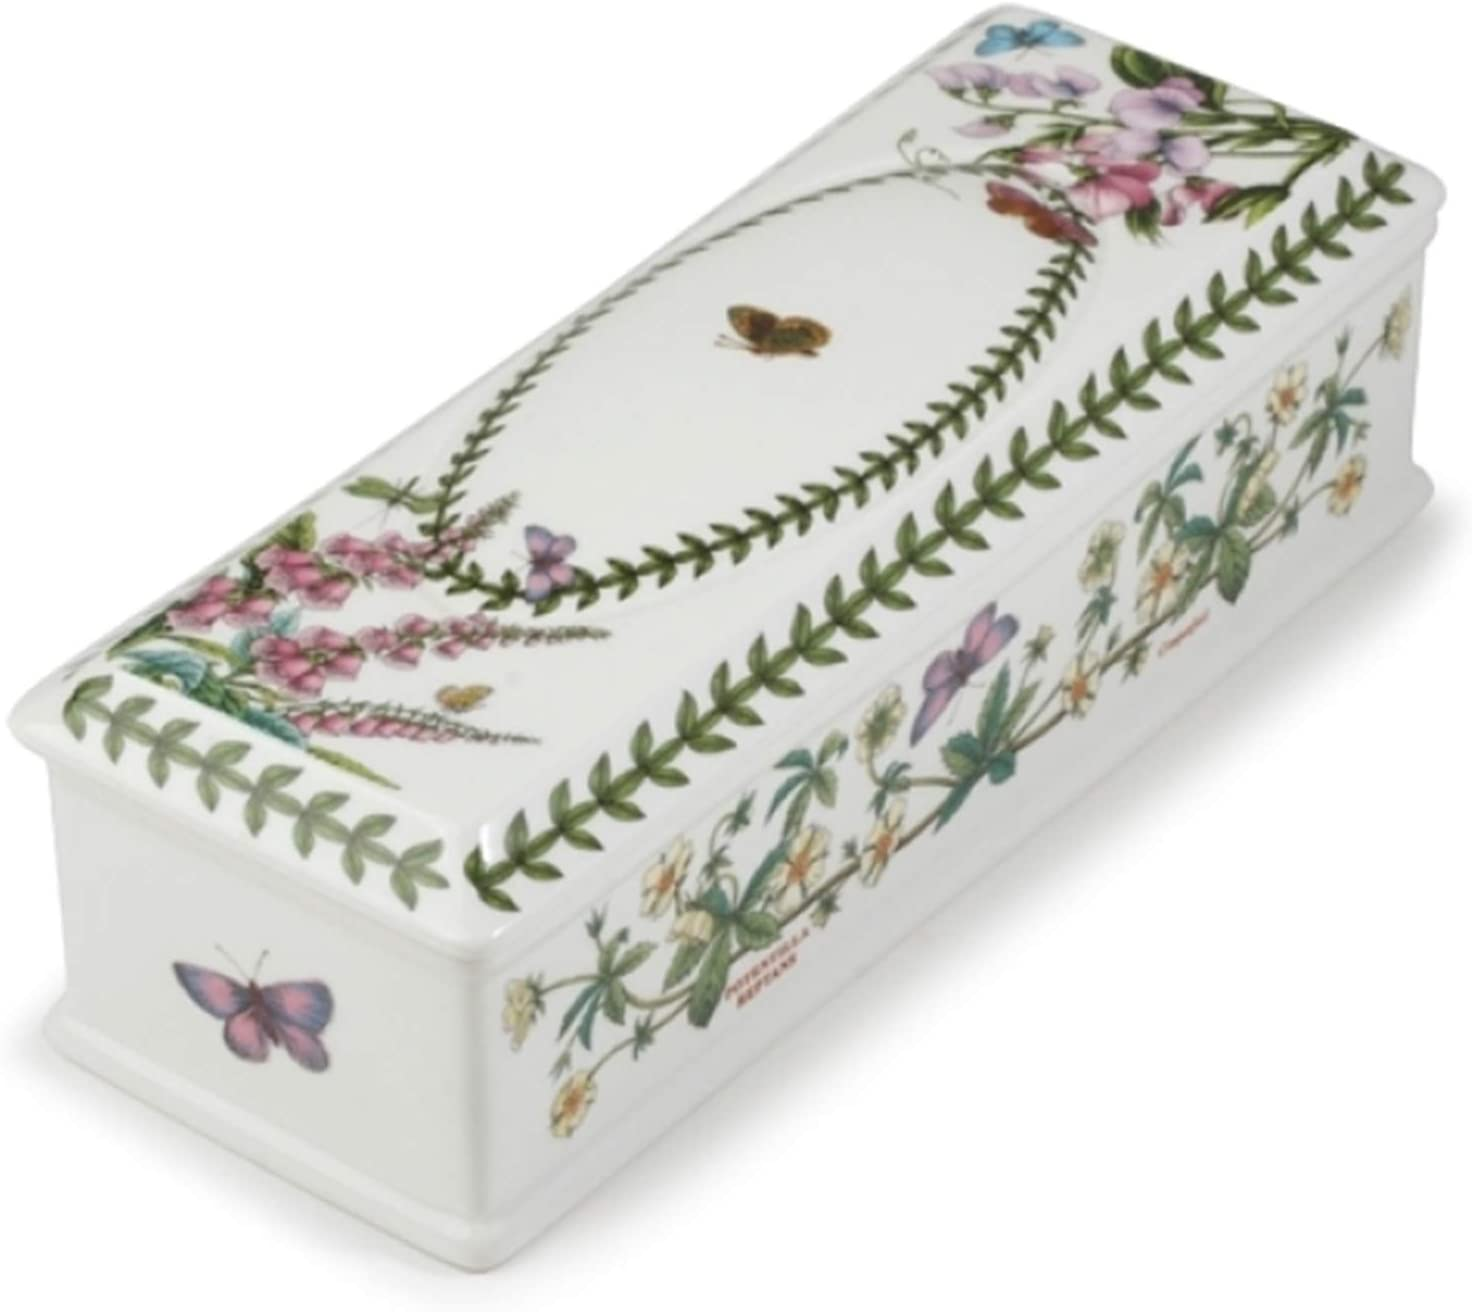 Portmeirion Botanic Garden Ceramic Cutlery Holder Flatware Caddy Tableware Tabletop Holder